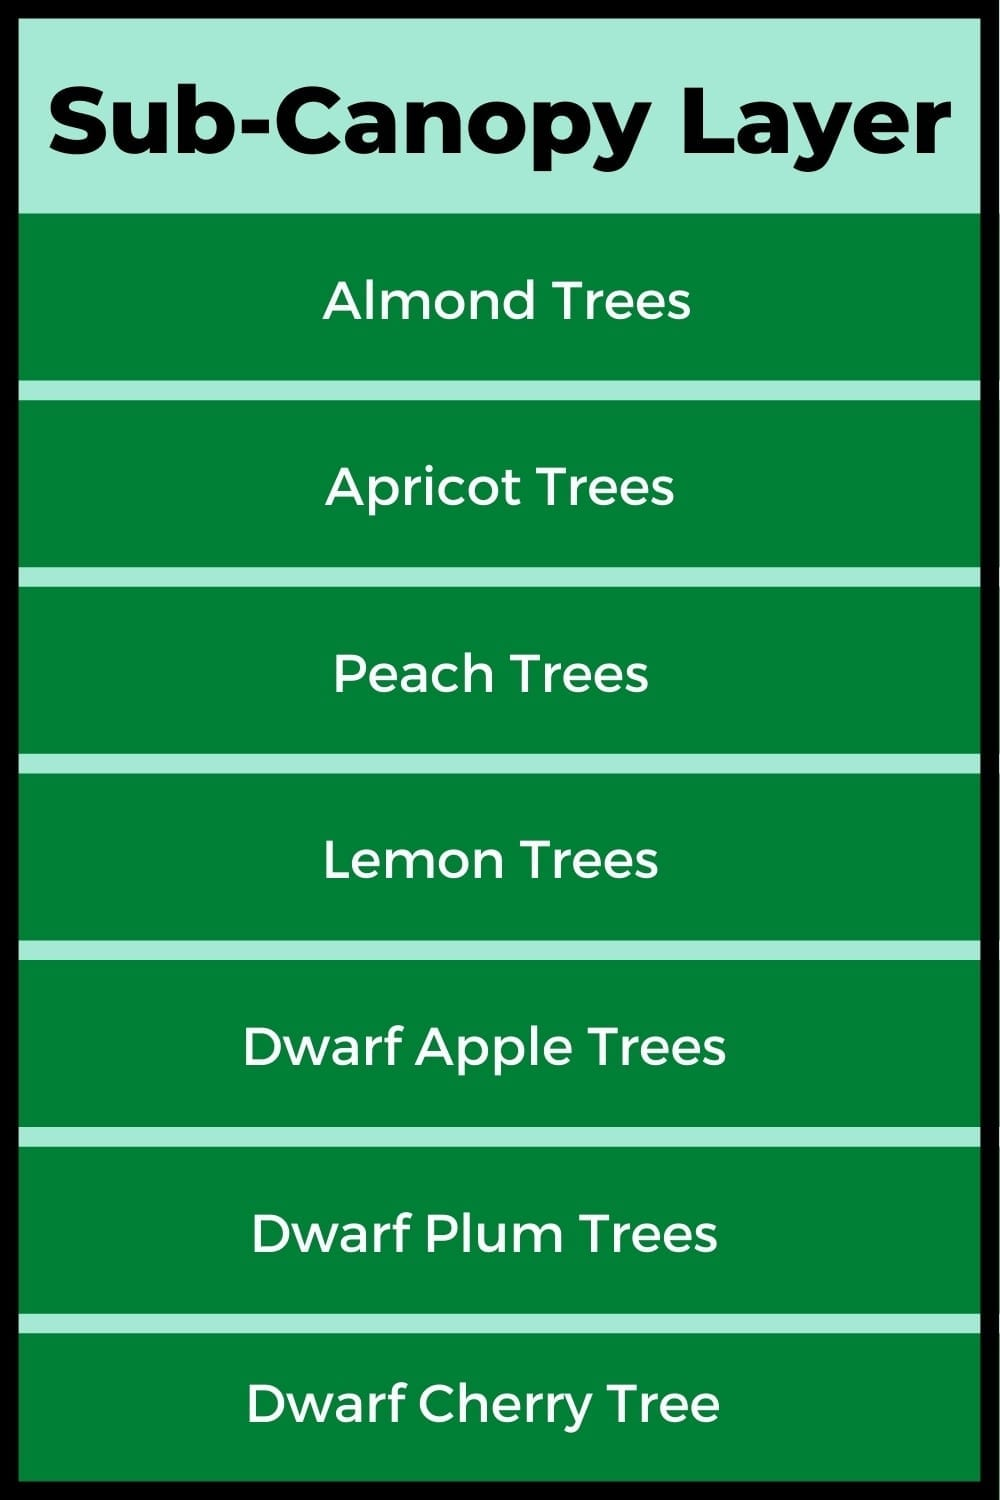 Plants suitable for the sub-canopy of a food forest